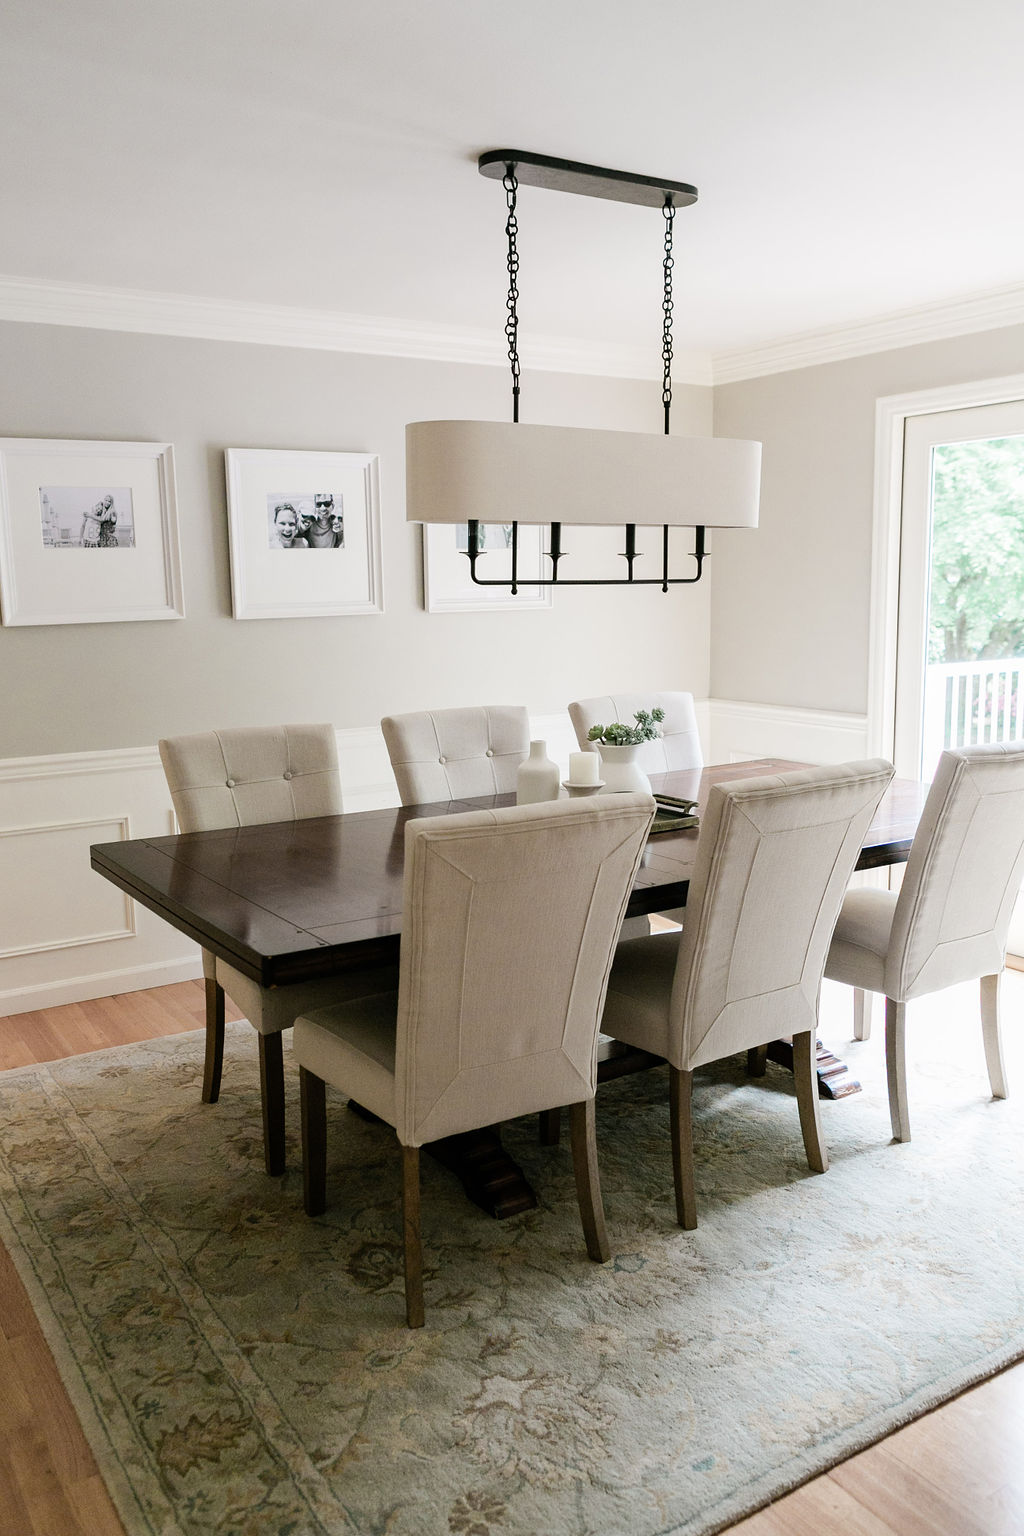 Transitional modern dining room with upholstered parsons chairs and white wainscot moulding. Soft grey walls and rejuvenation chandelier highlight this Redmond, Washington home.